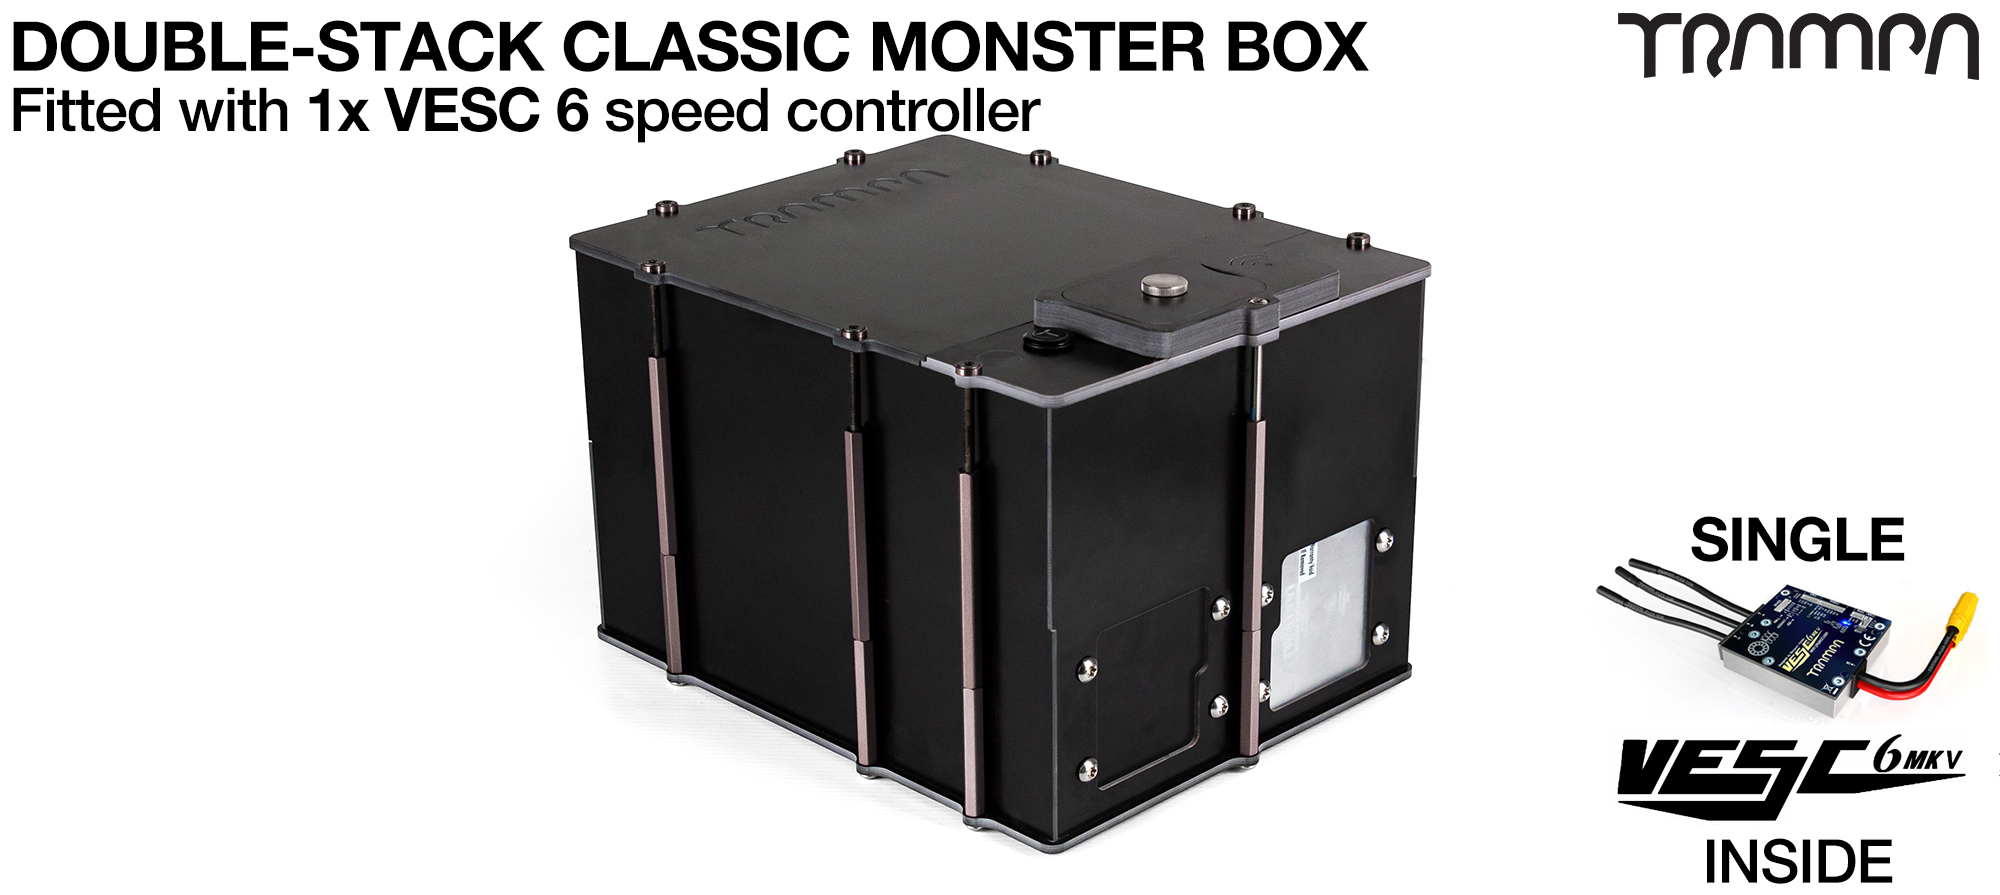 Classic MONSTER Box MkV DOUBLE STACKER supplied with 1x VESC 6 & 1x Externaly Mounted NRF VESC Connect Dongle & Cable